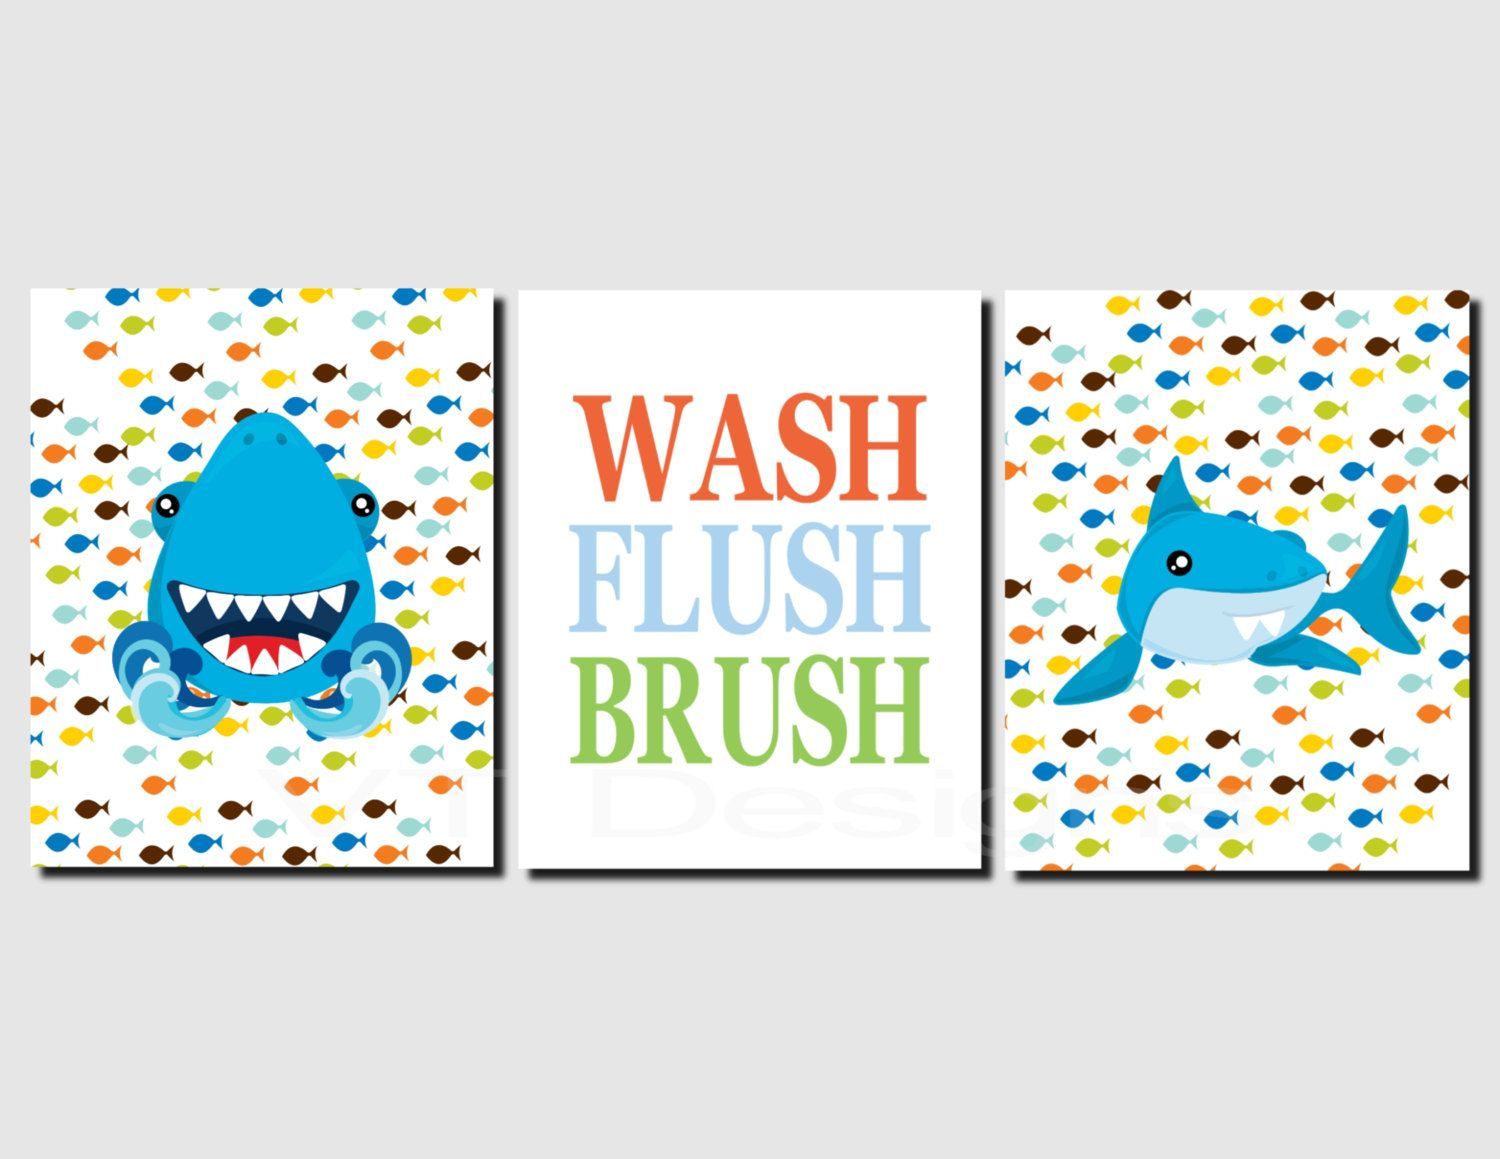 Kids Bathroom Wall Art shark bathroom art, kids bathroom wall art, wash, brush, flush